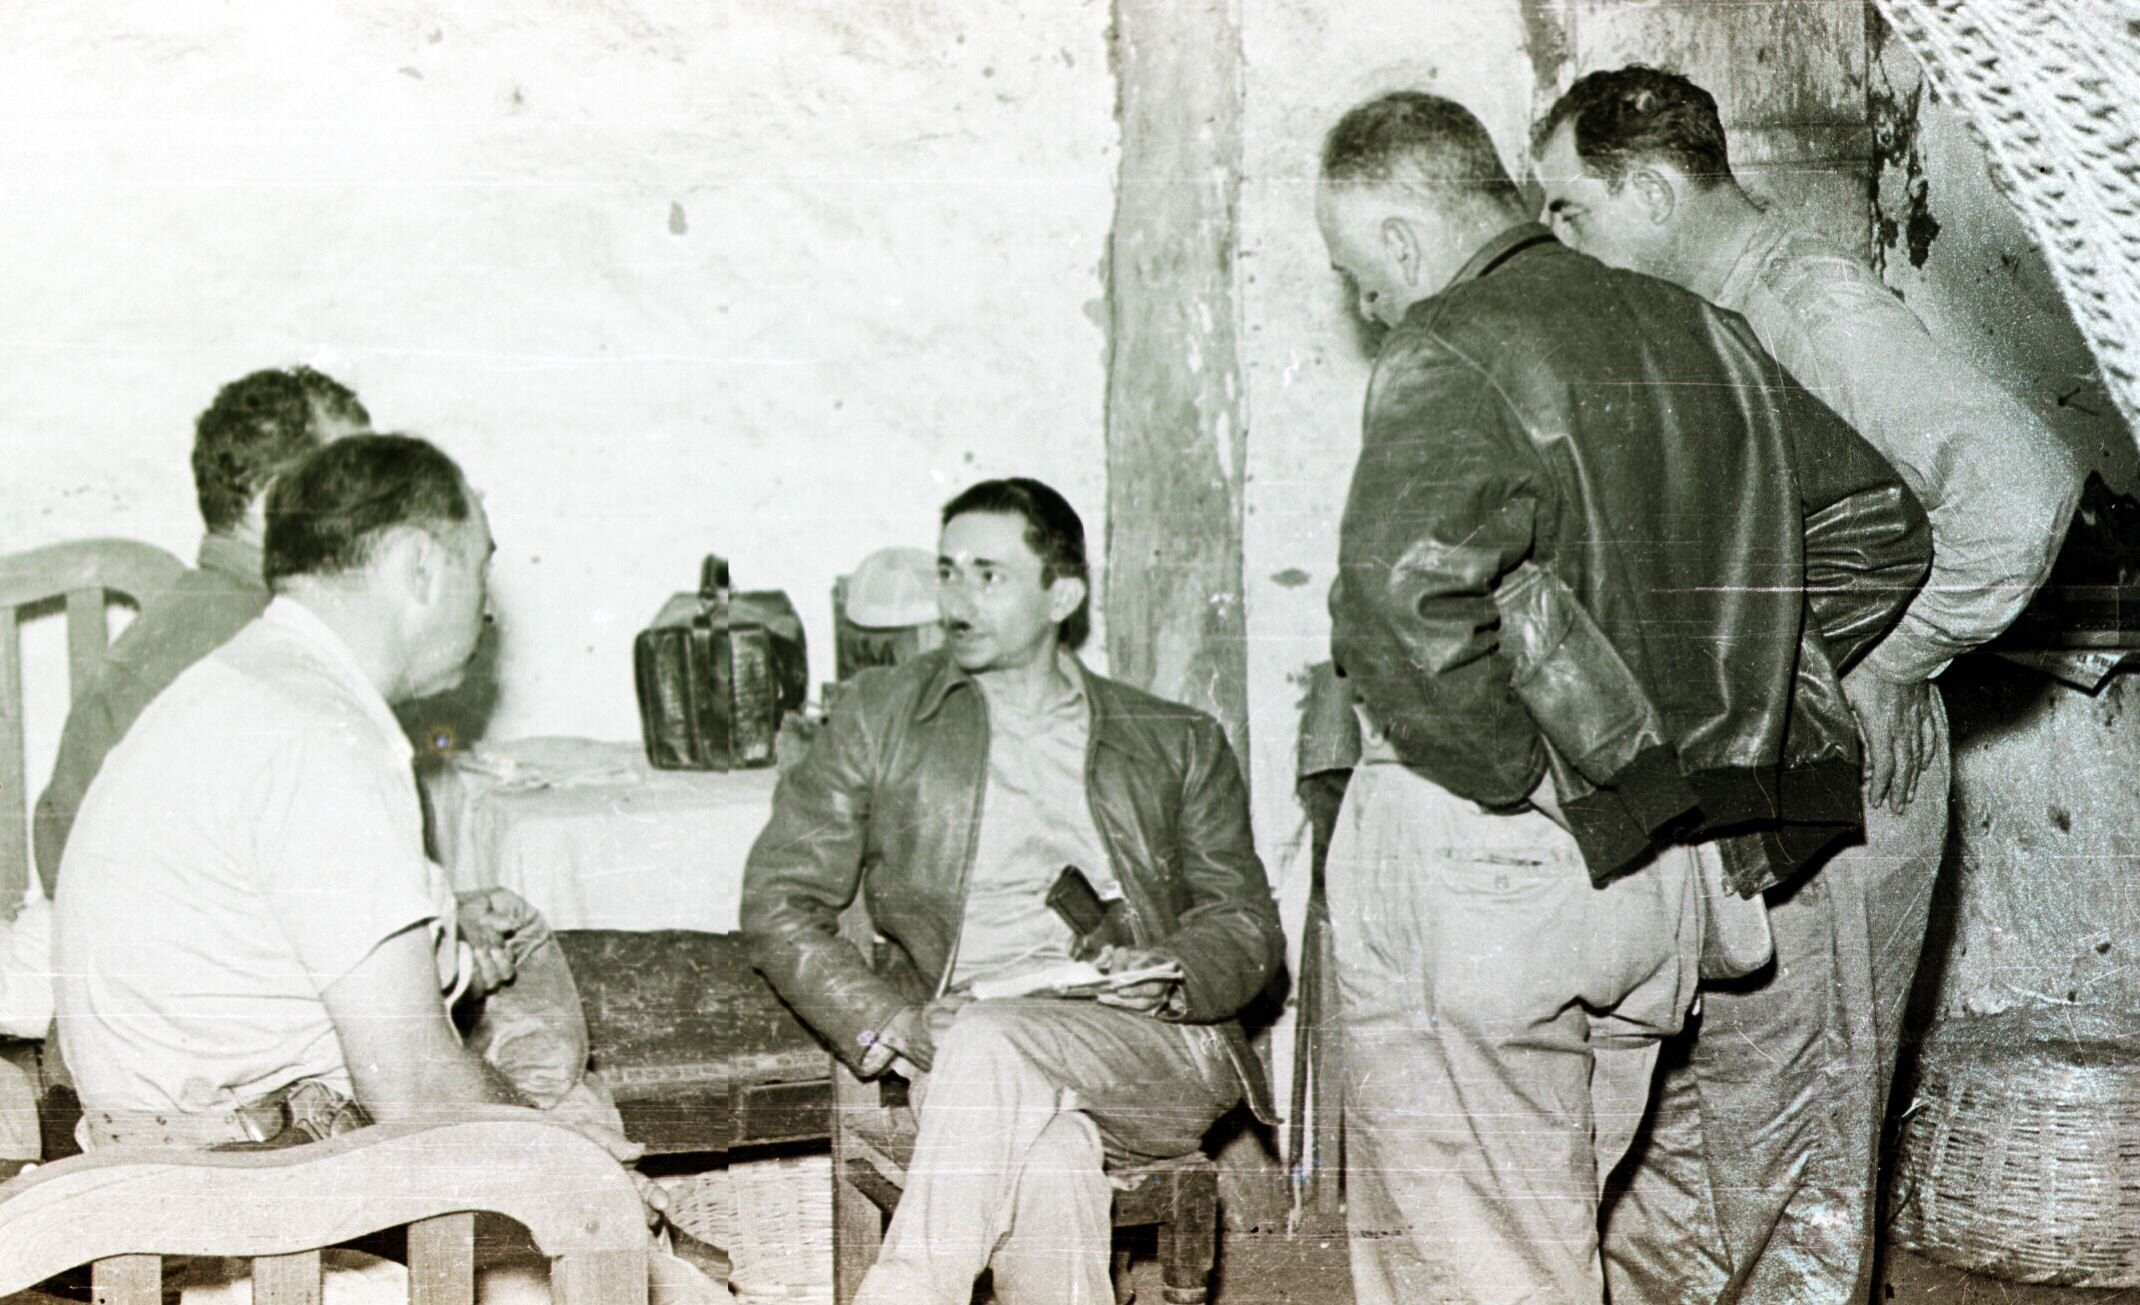 This 1954 file photo shows Guatemalan Col. Castillo Armas (C) surrounded by supporters days before Armas led a coup that deposed President Jacobo Arbenz. Armas assumed the presidency 01 September and would be assassinated while in office 26 July 1957